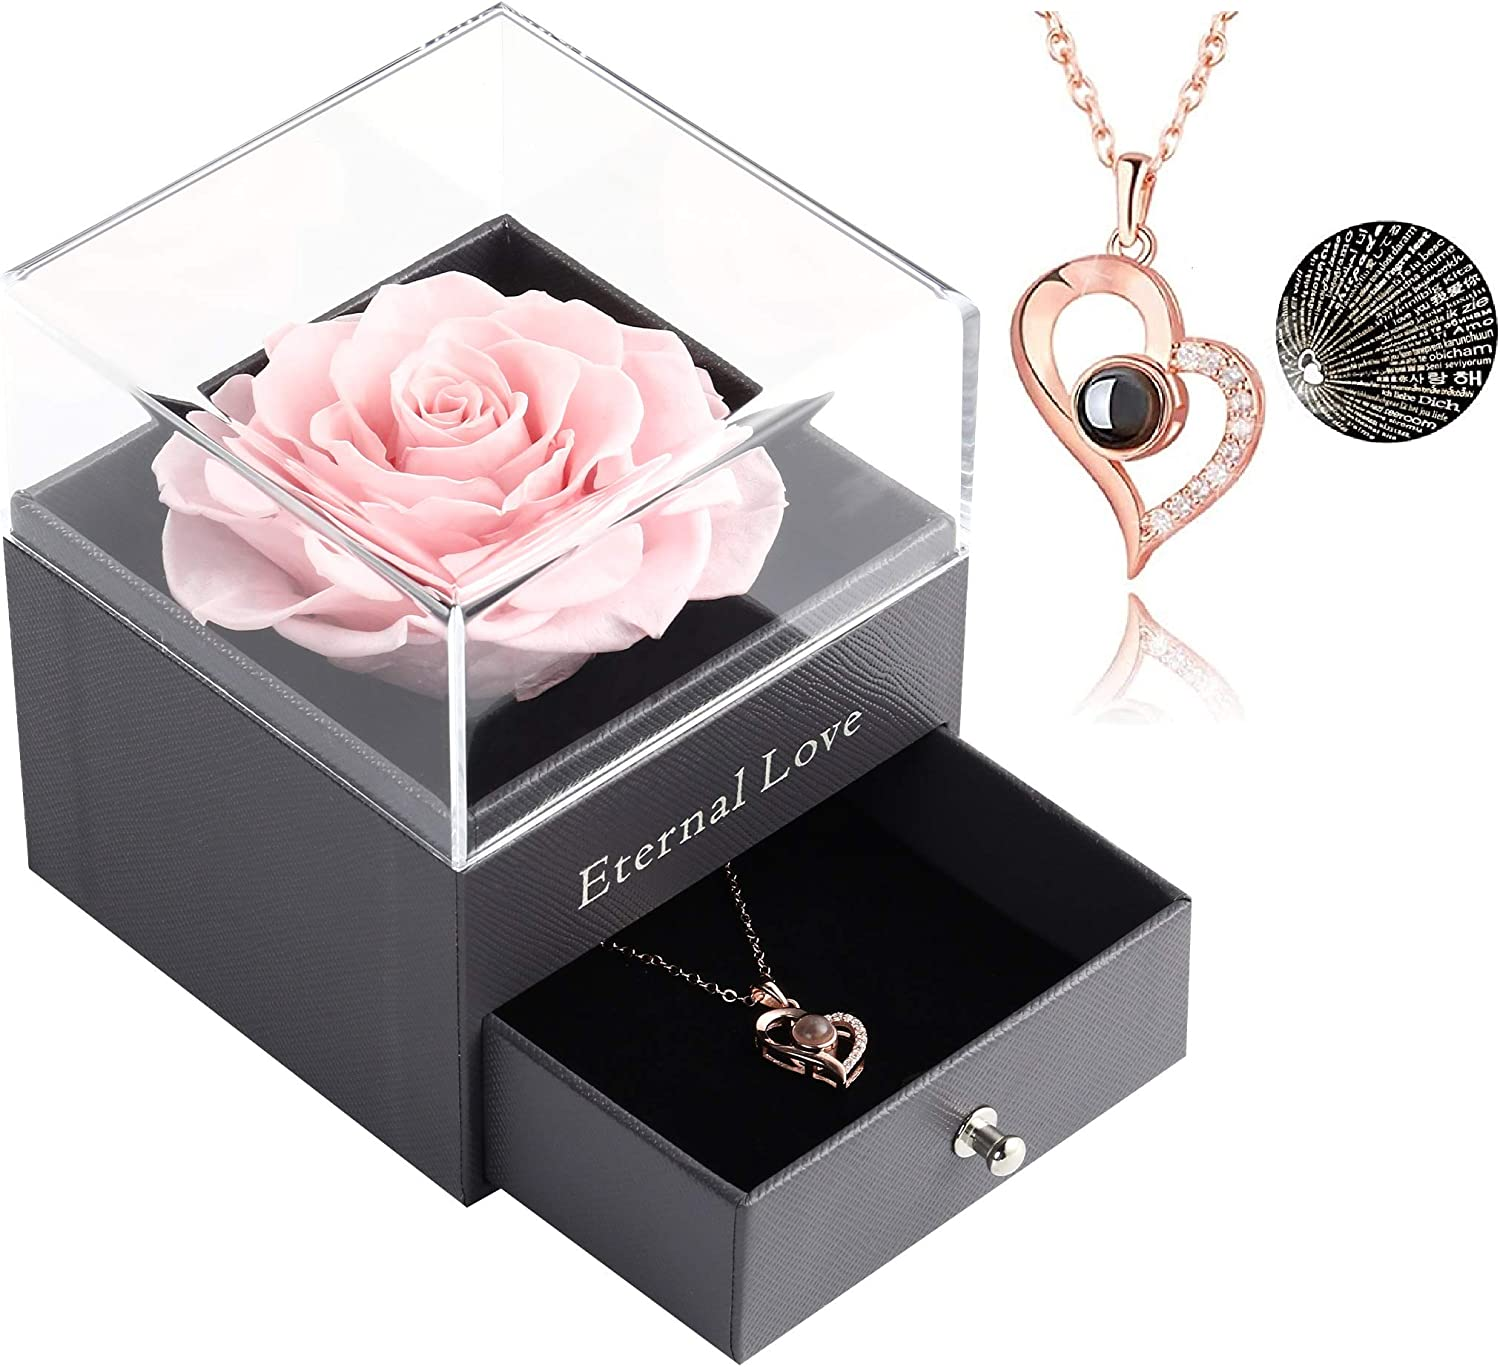 Preserved price Rose Drawer Animer and price revision with Special Necklace Fres Heart Handmade